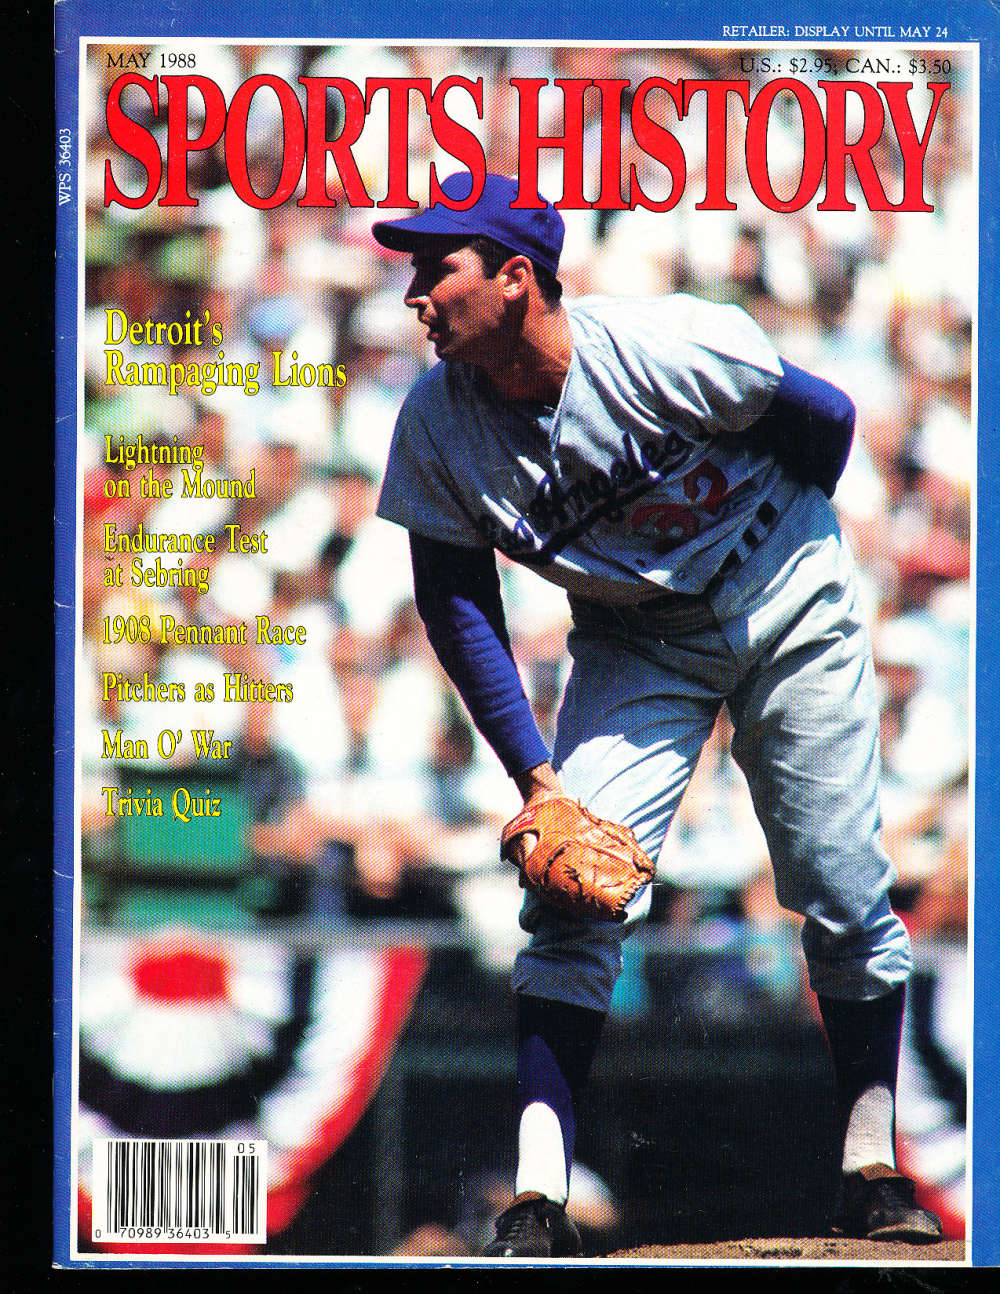 May 1988 Sports History Sandy Koufax Dodgers nm bx1